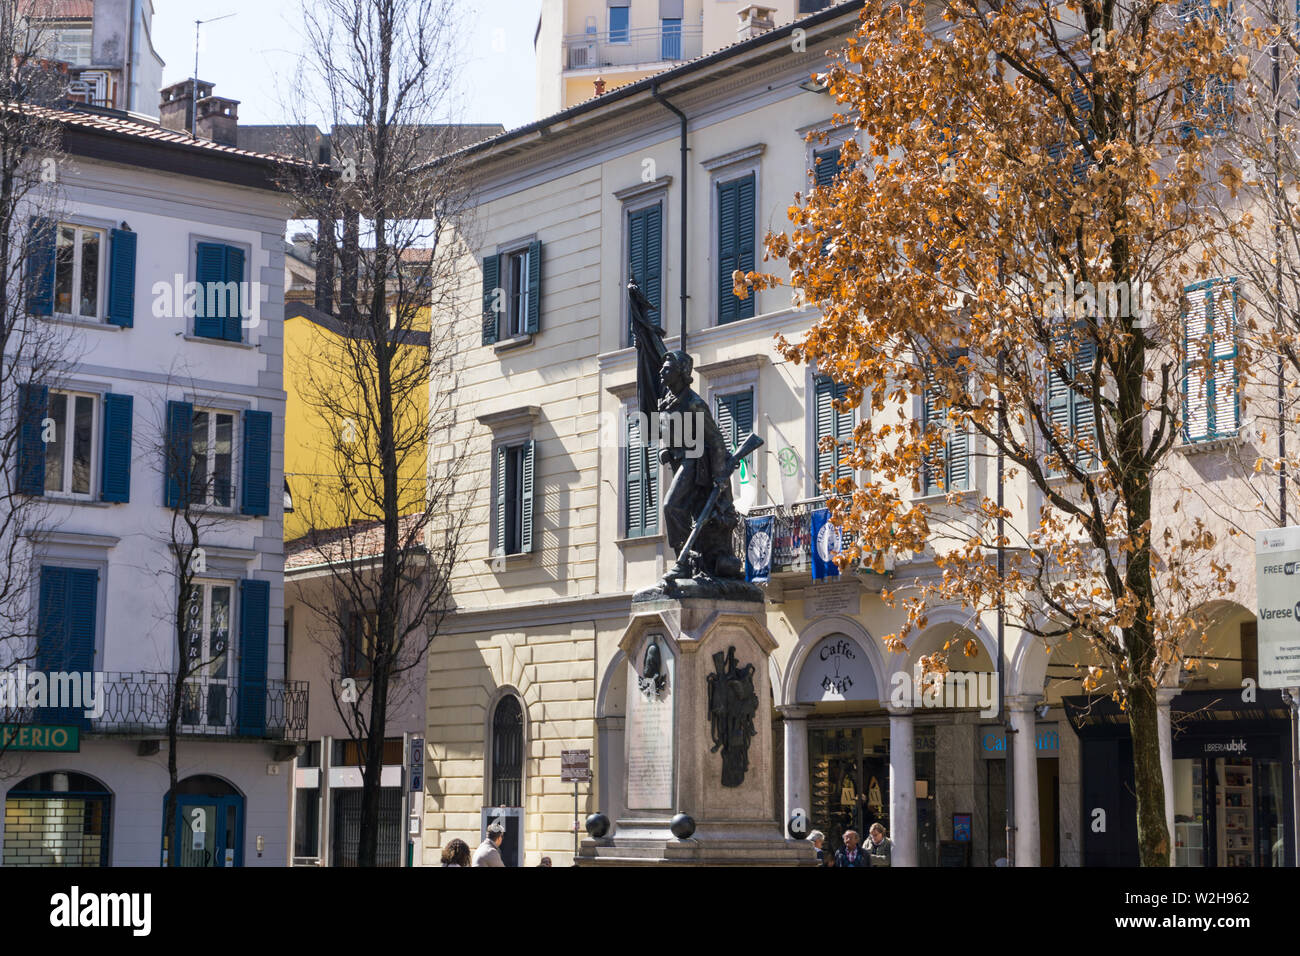 Italy, Lombardy, Varese, Piazza del Podestà Stock Photo